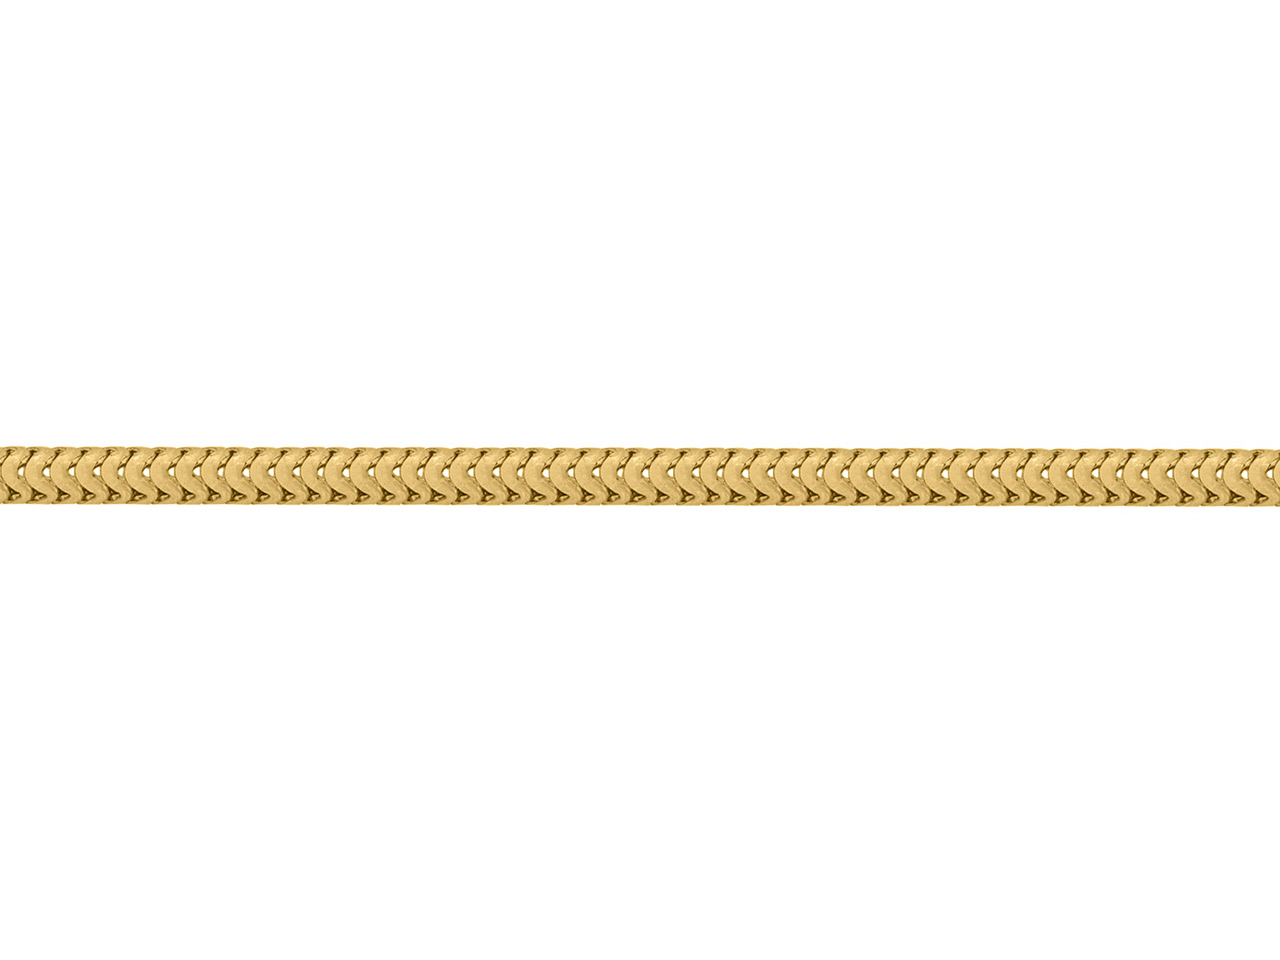 Chaine Serpent ronde, 2,4 mm, Or jaune 18k. Réf. 00791